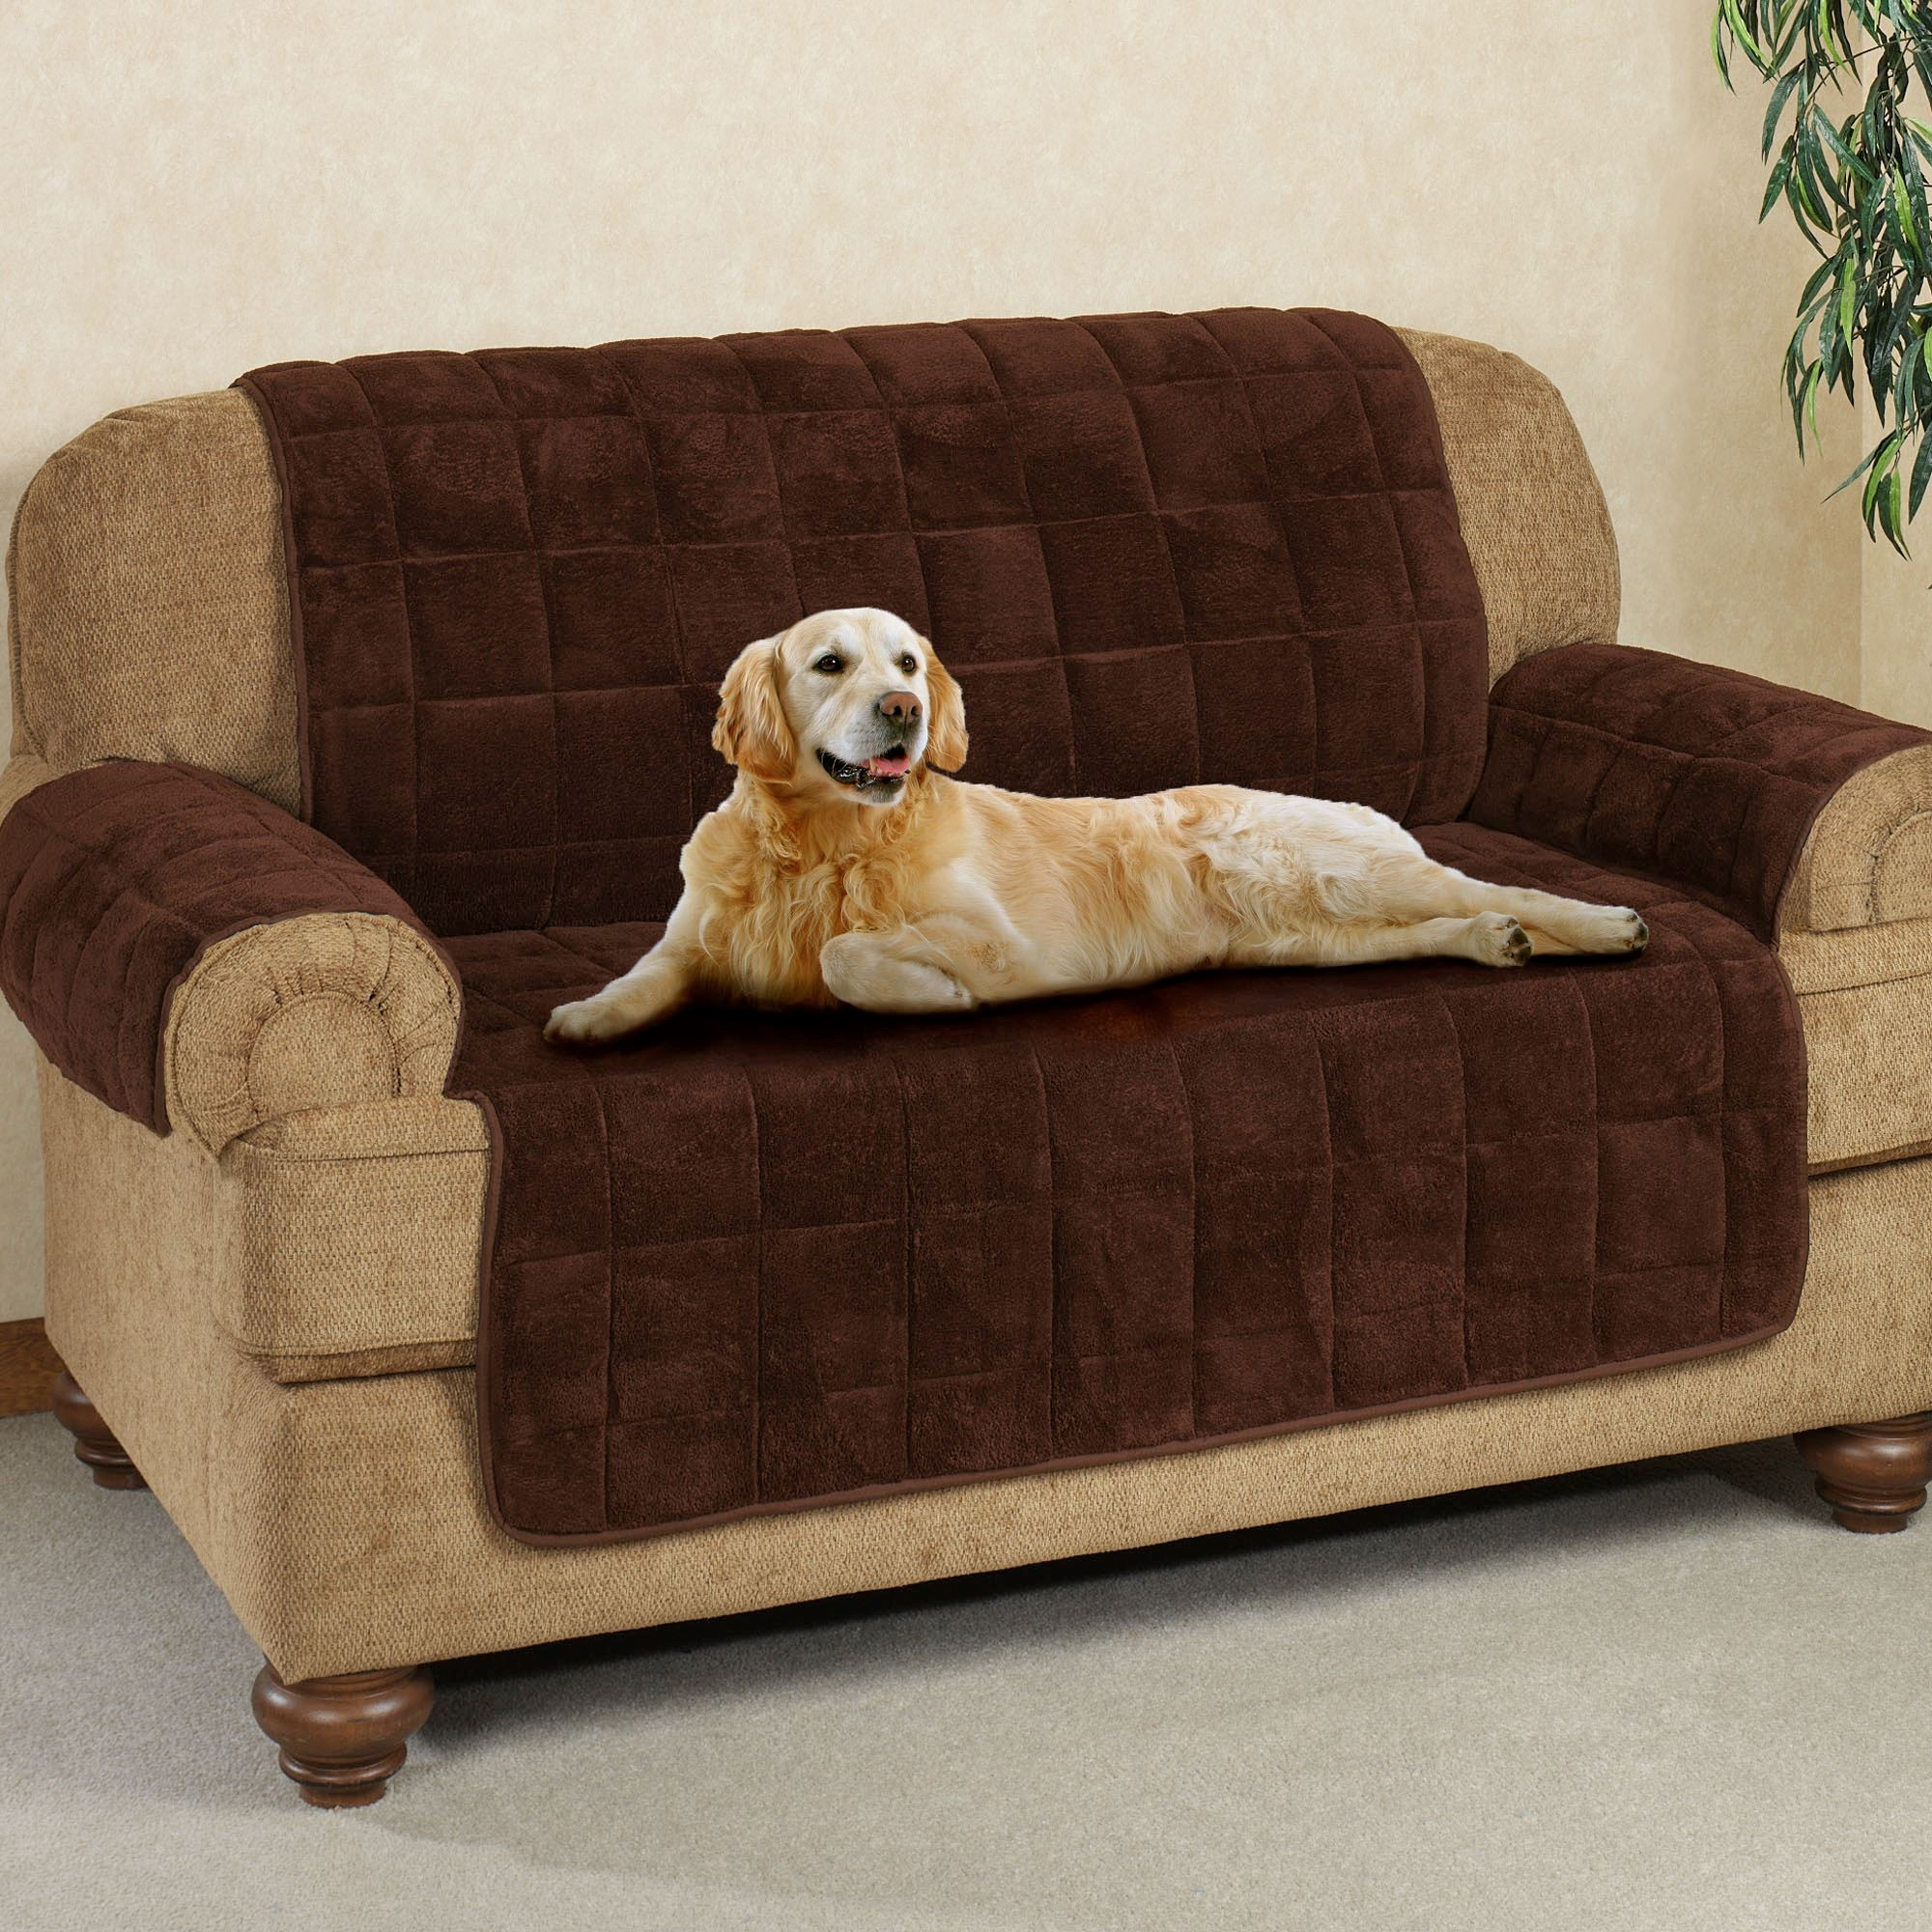 Sofa Covers for Dogs New Microplush Pet Furniture Covers with Longer Back Flap Photo